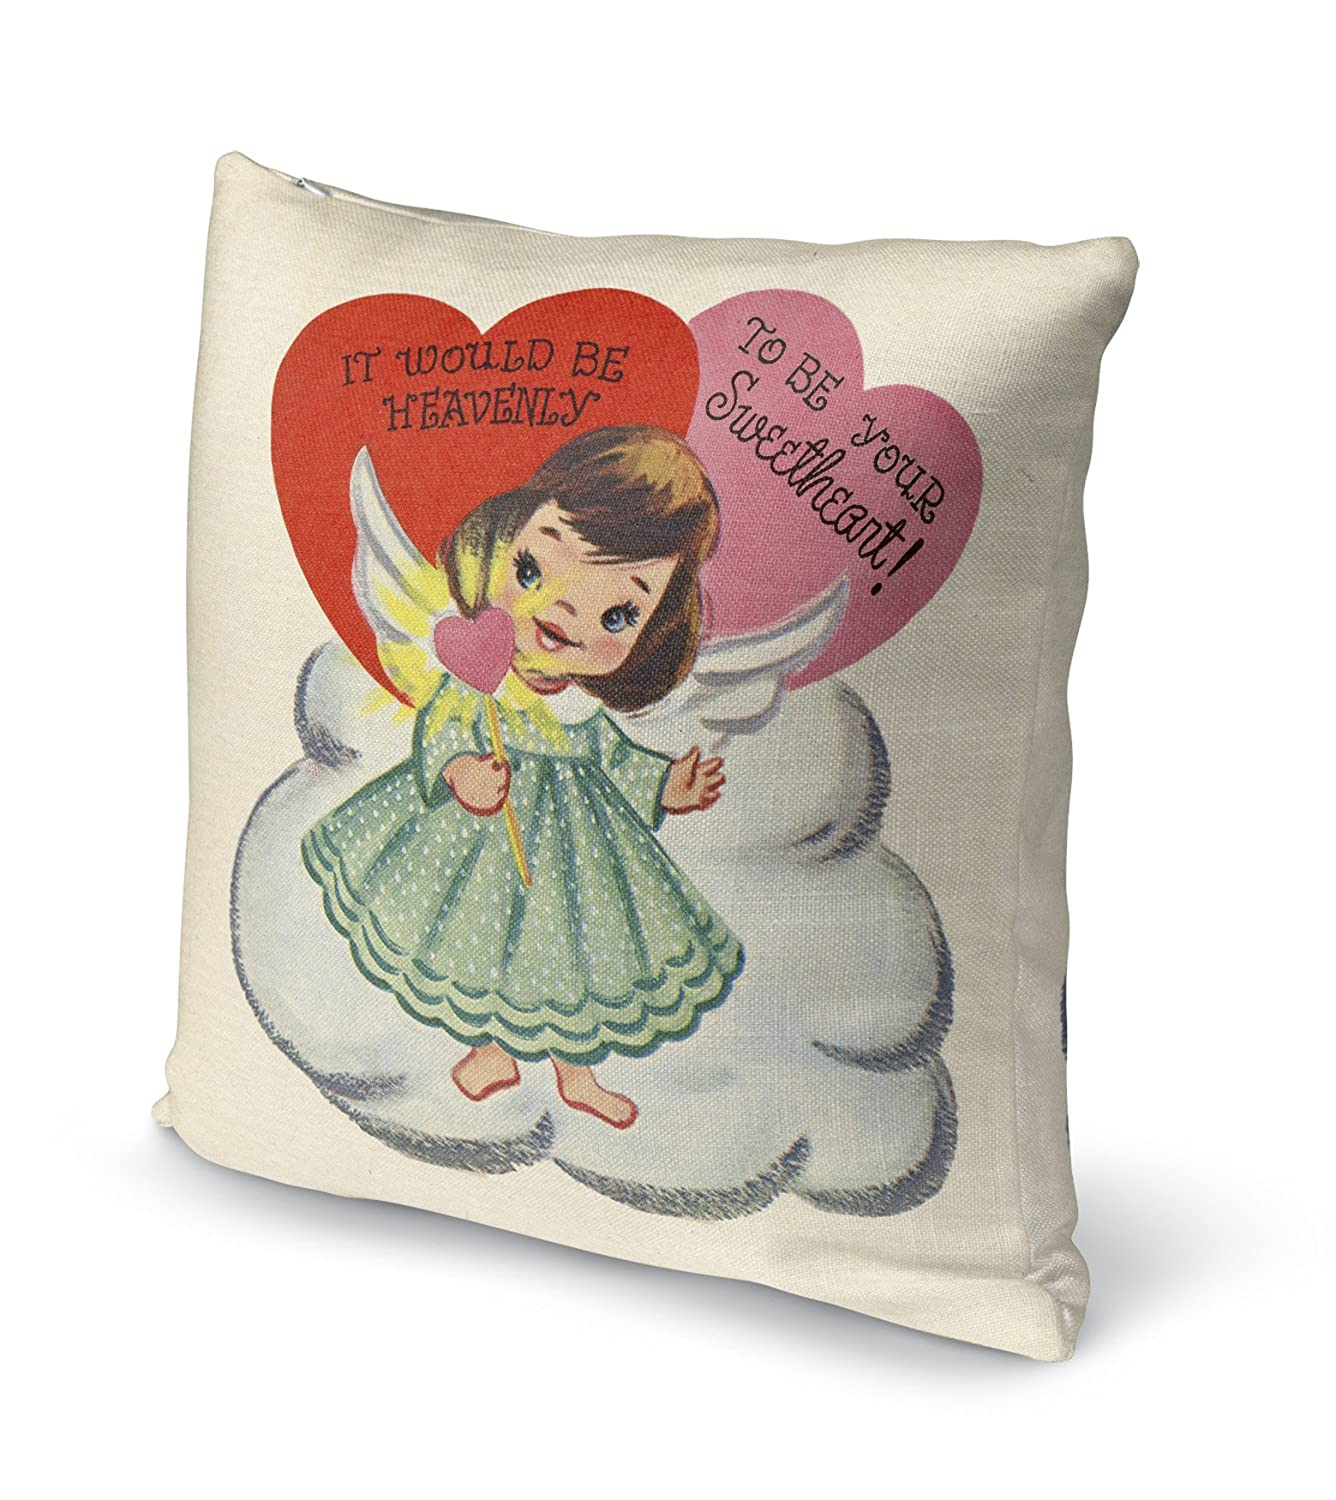 - TRADITIONS Collection KAVKA Designs To Be Your Sweetheart Accent Pillow, Size: 24X24X6 - TELAVC8171DI24 Green//Pink//Red